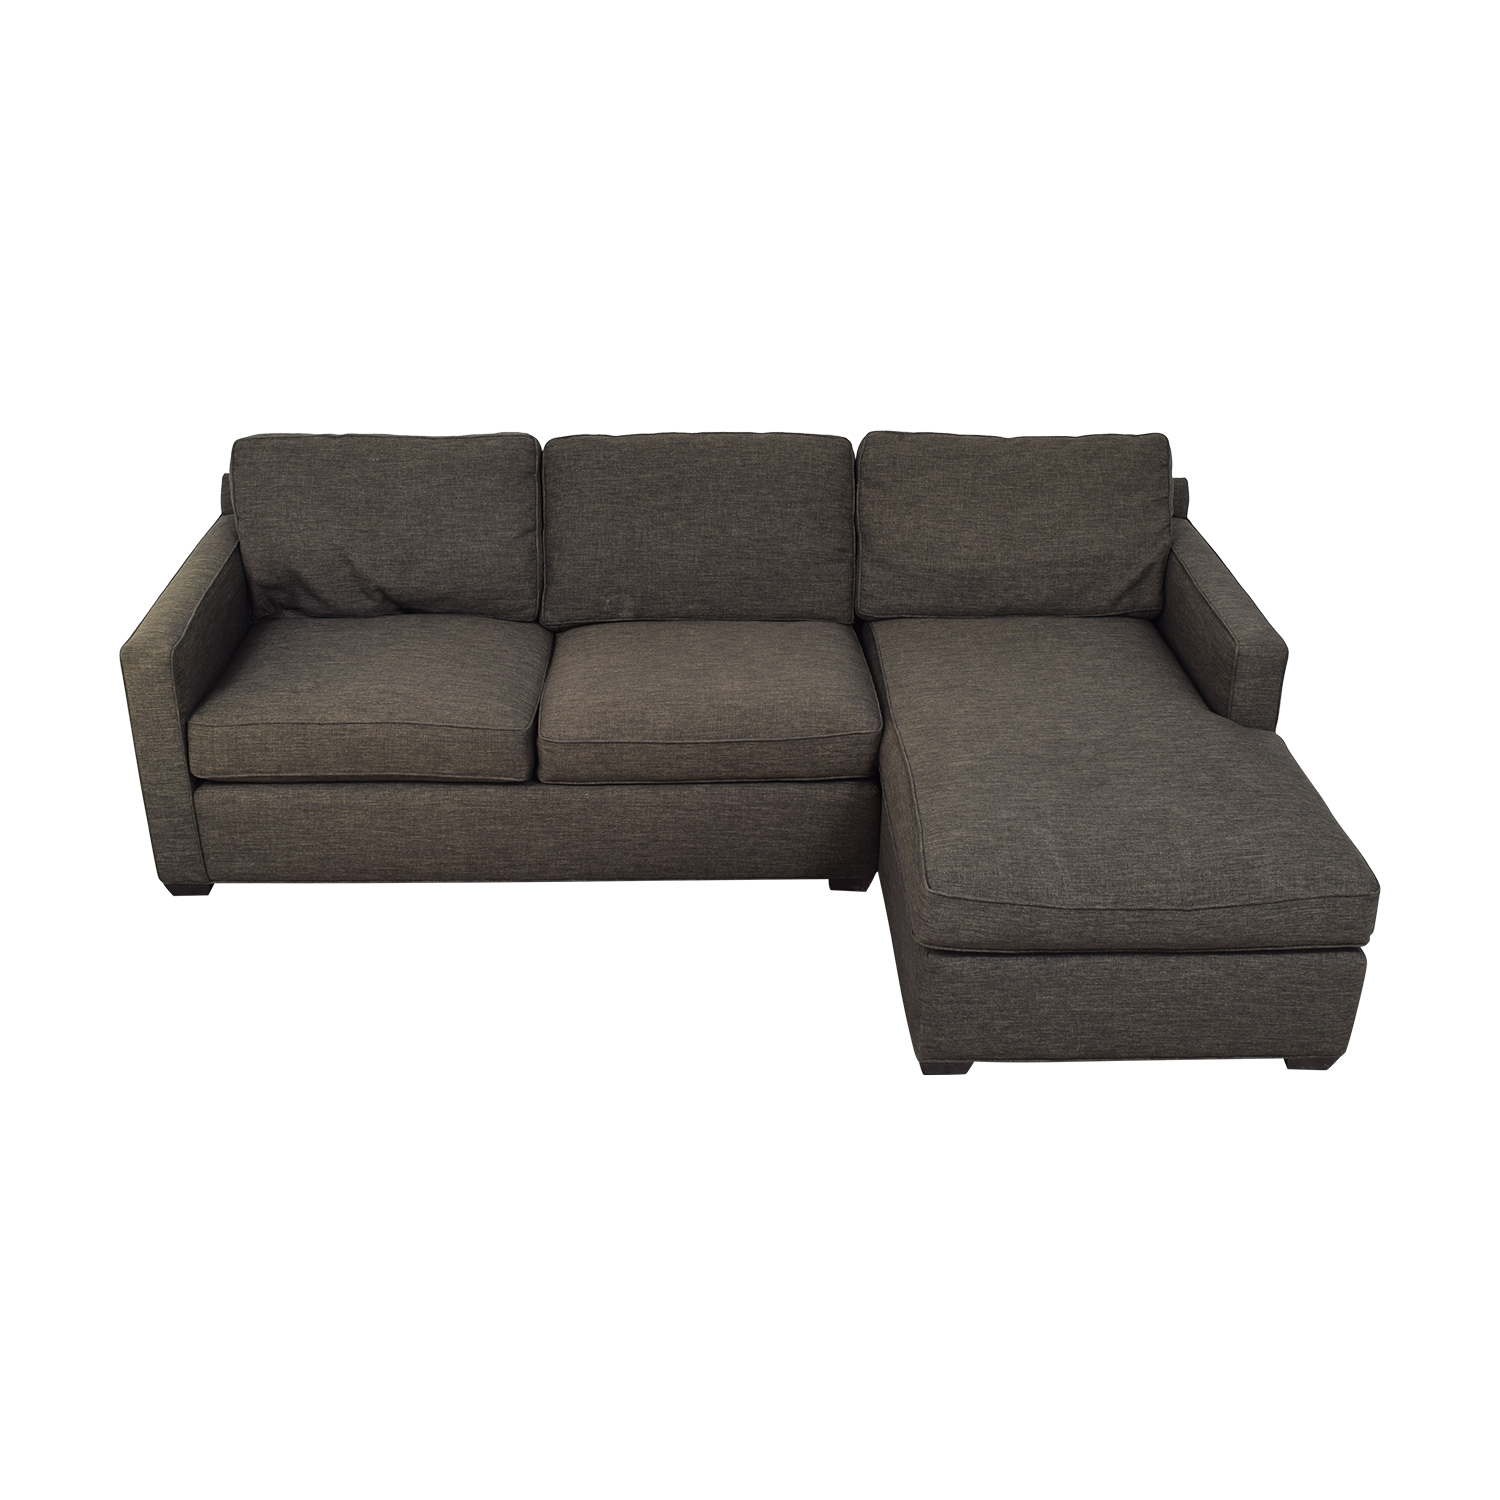 Crate & Barrel Crate & Barrel Grey Chaise Sectional dimensions